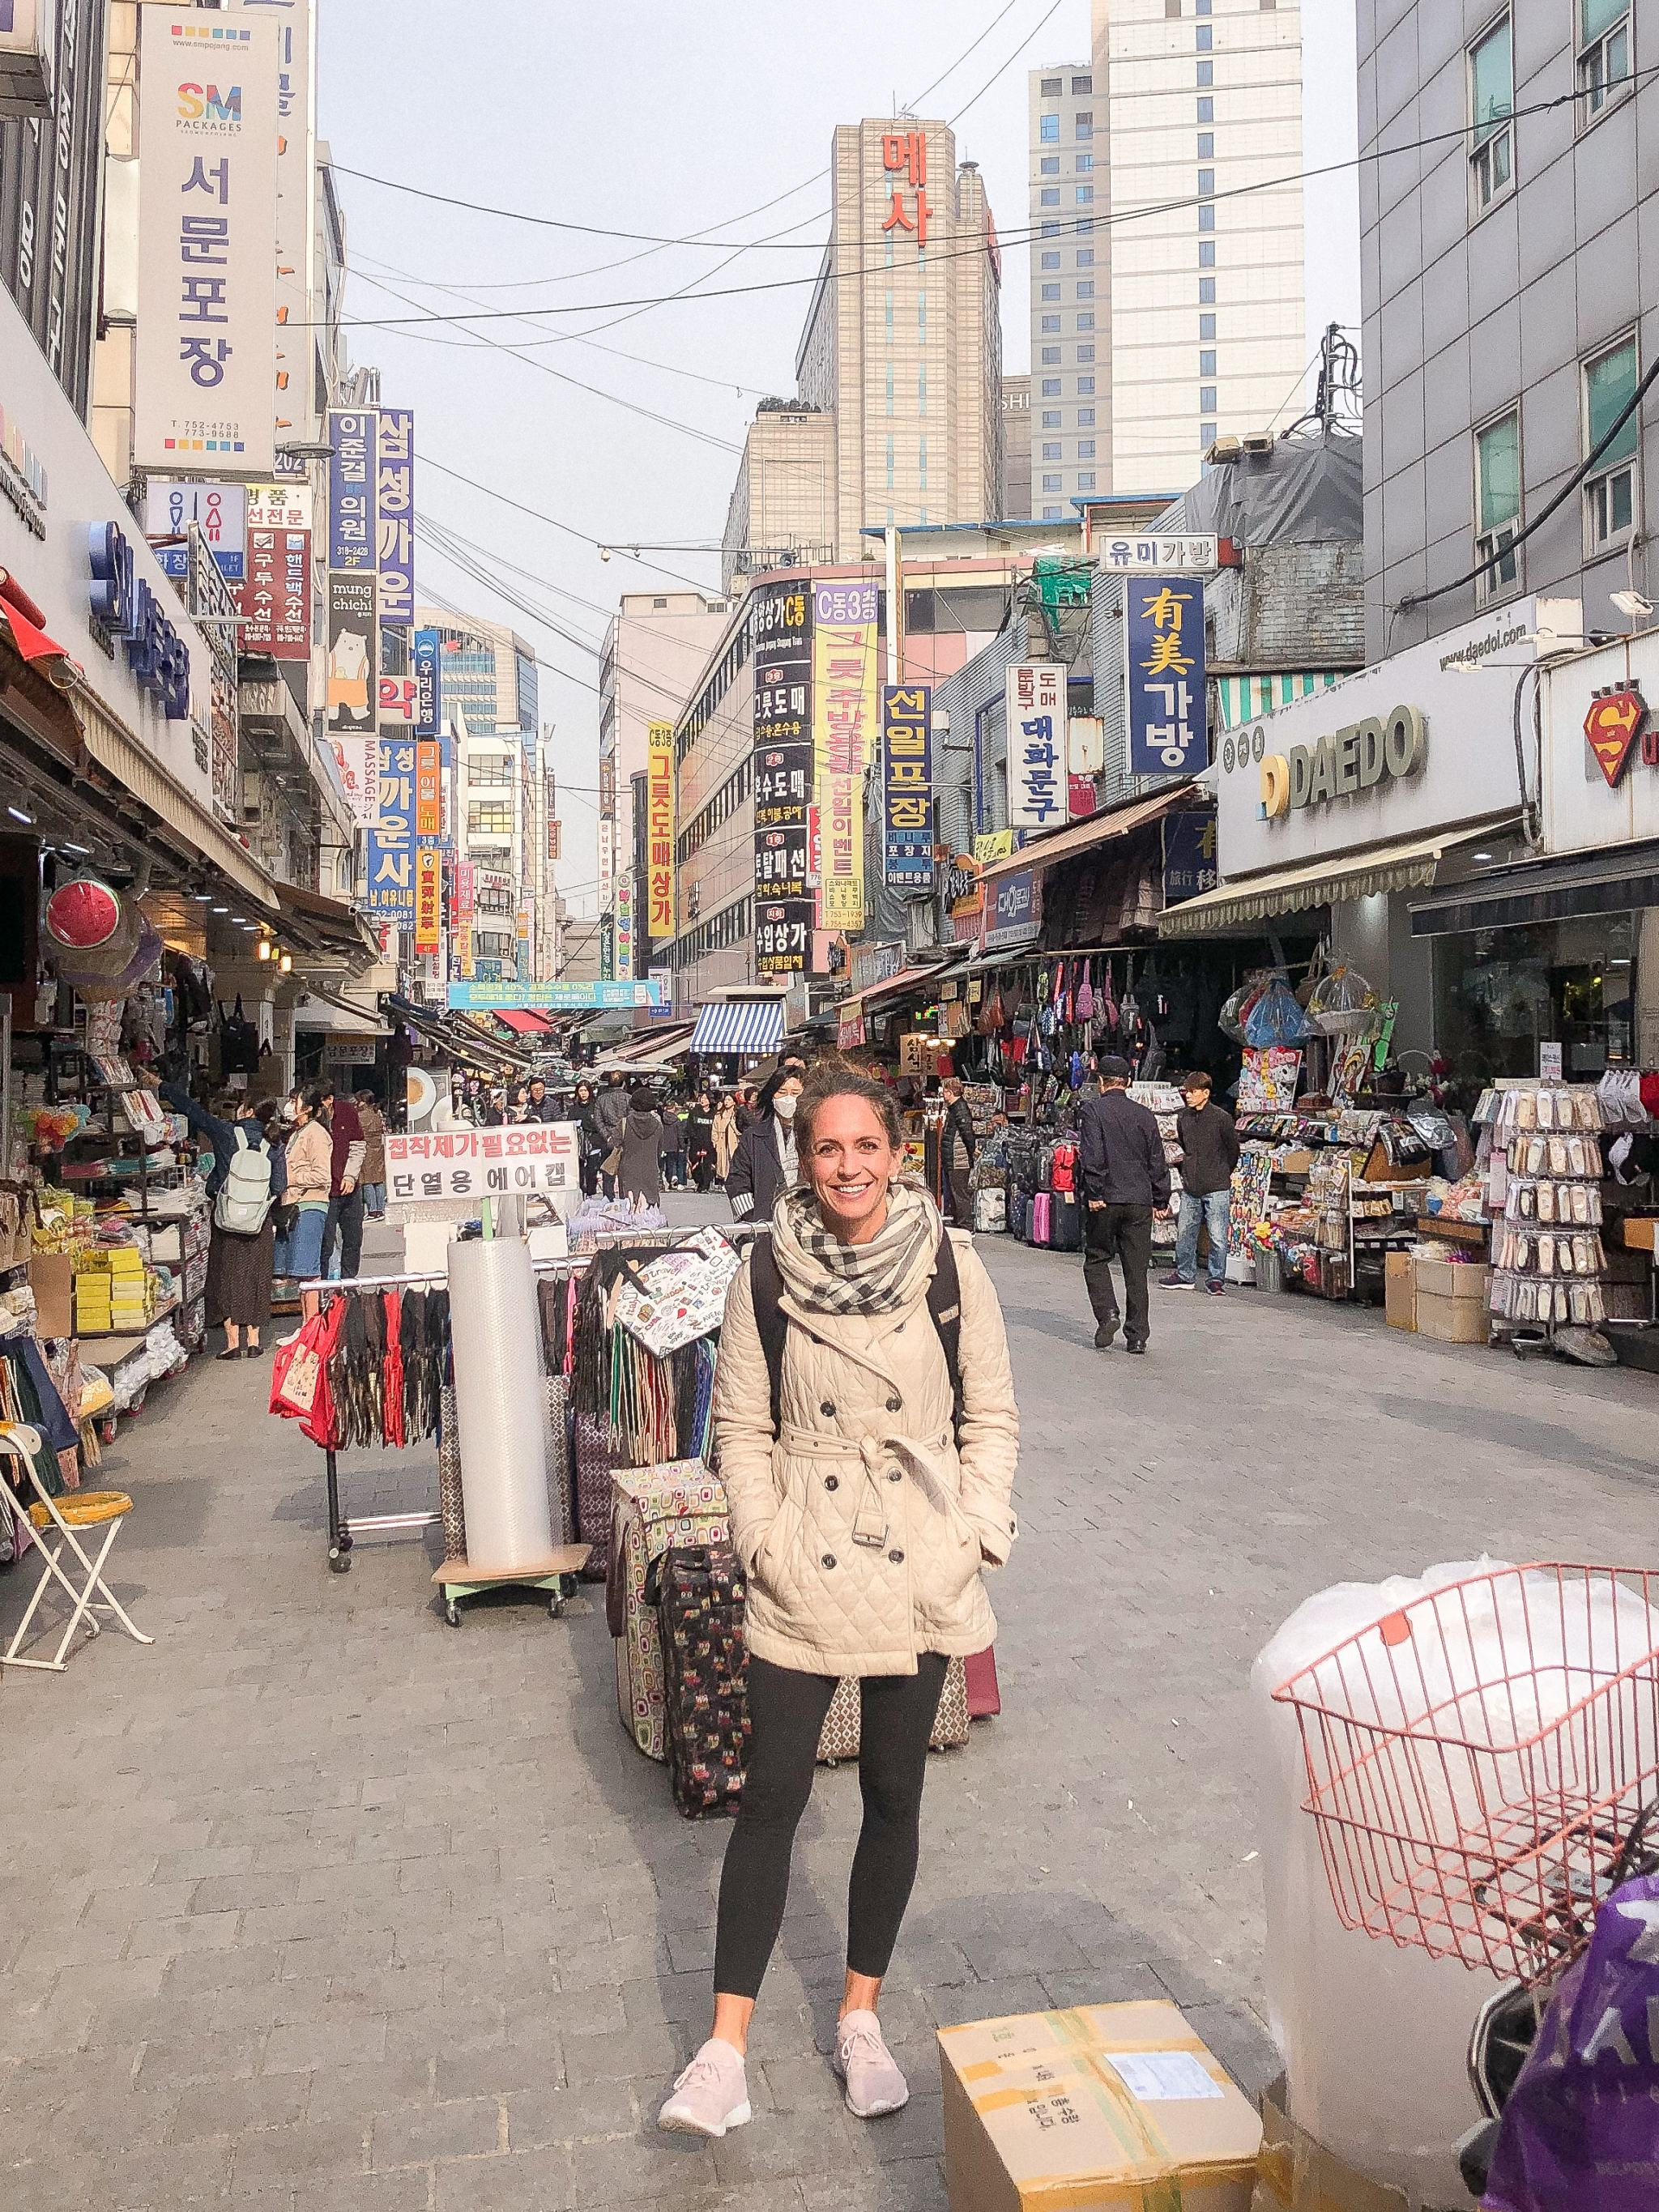 shopping in Seoul - things to do near Yongsan - shopping in Itaewon - things to do in Seoul - things to see in Seoul - traveling in Seoul Korea - traveling in Korea - shopping in Nandaemun Market